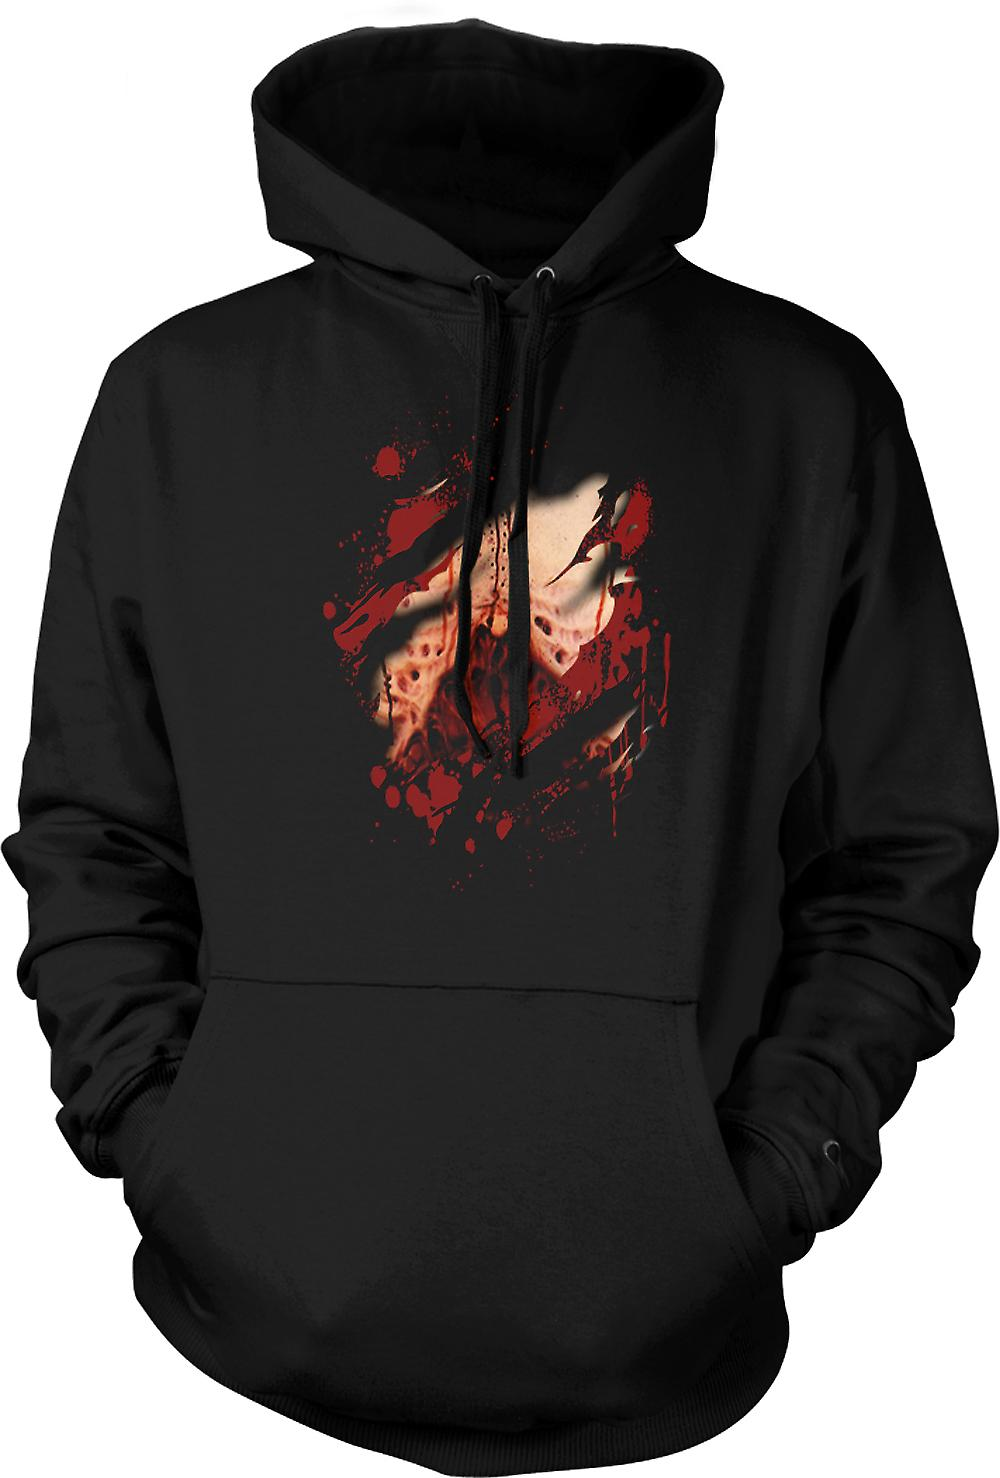 Mens Hoodie - Zombie Undead Gory Lungs Ripped Design